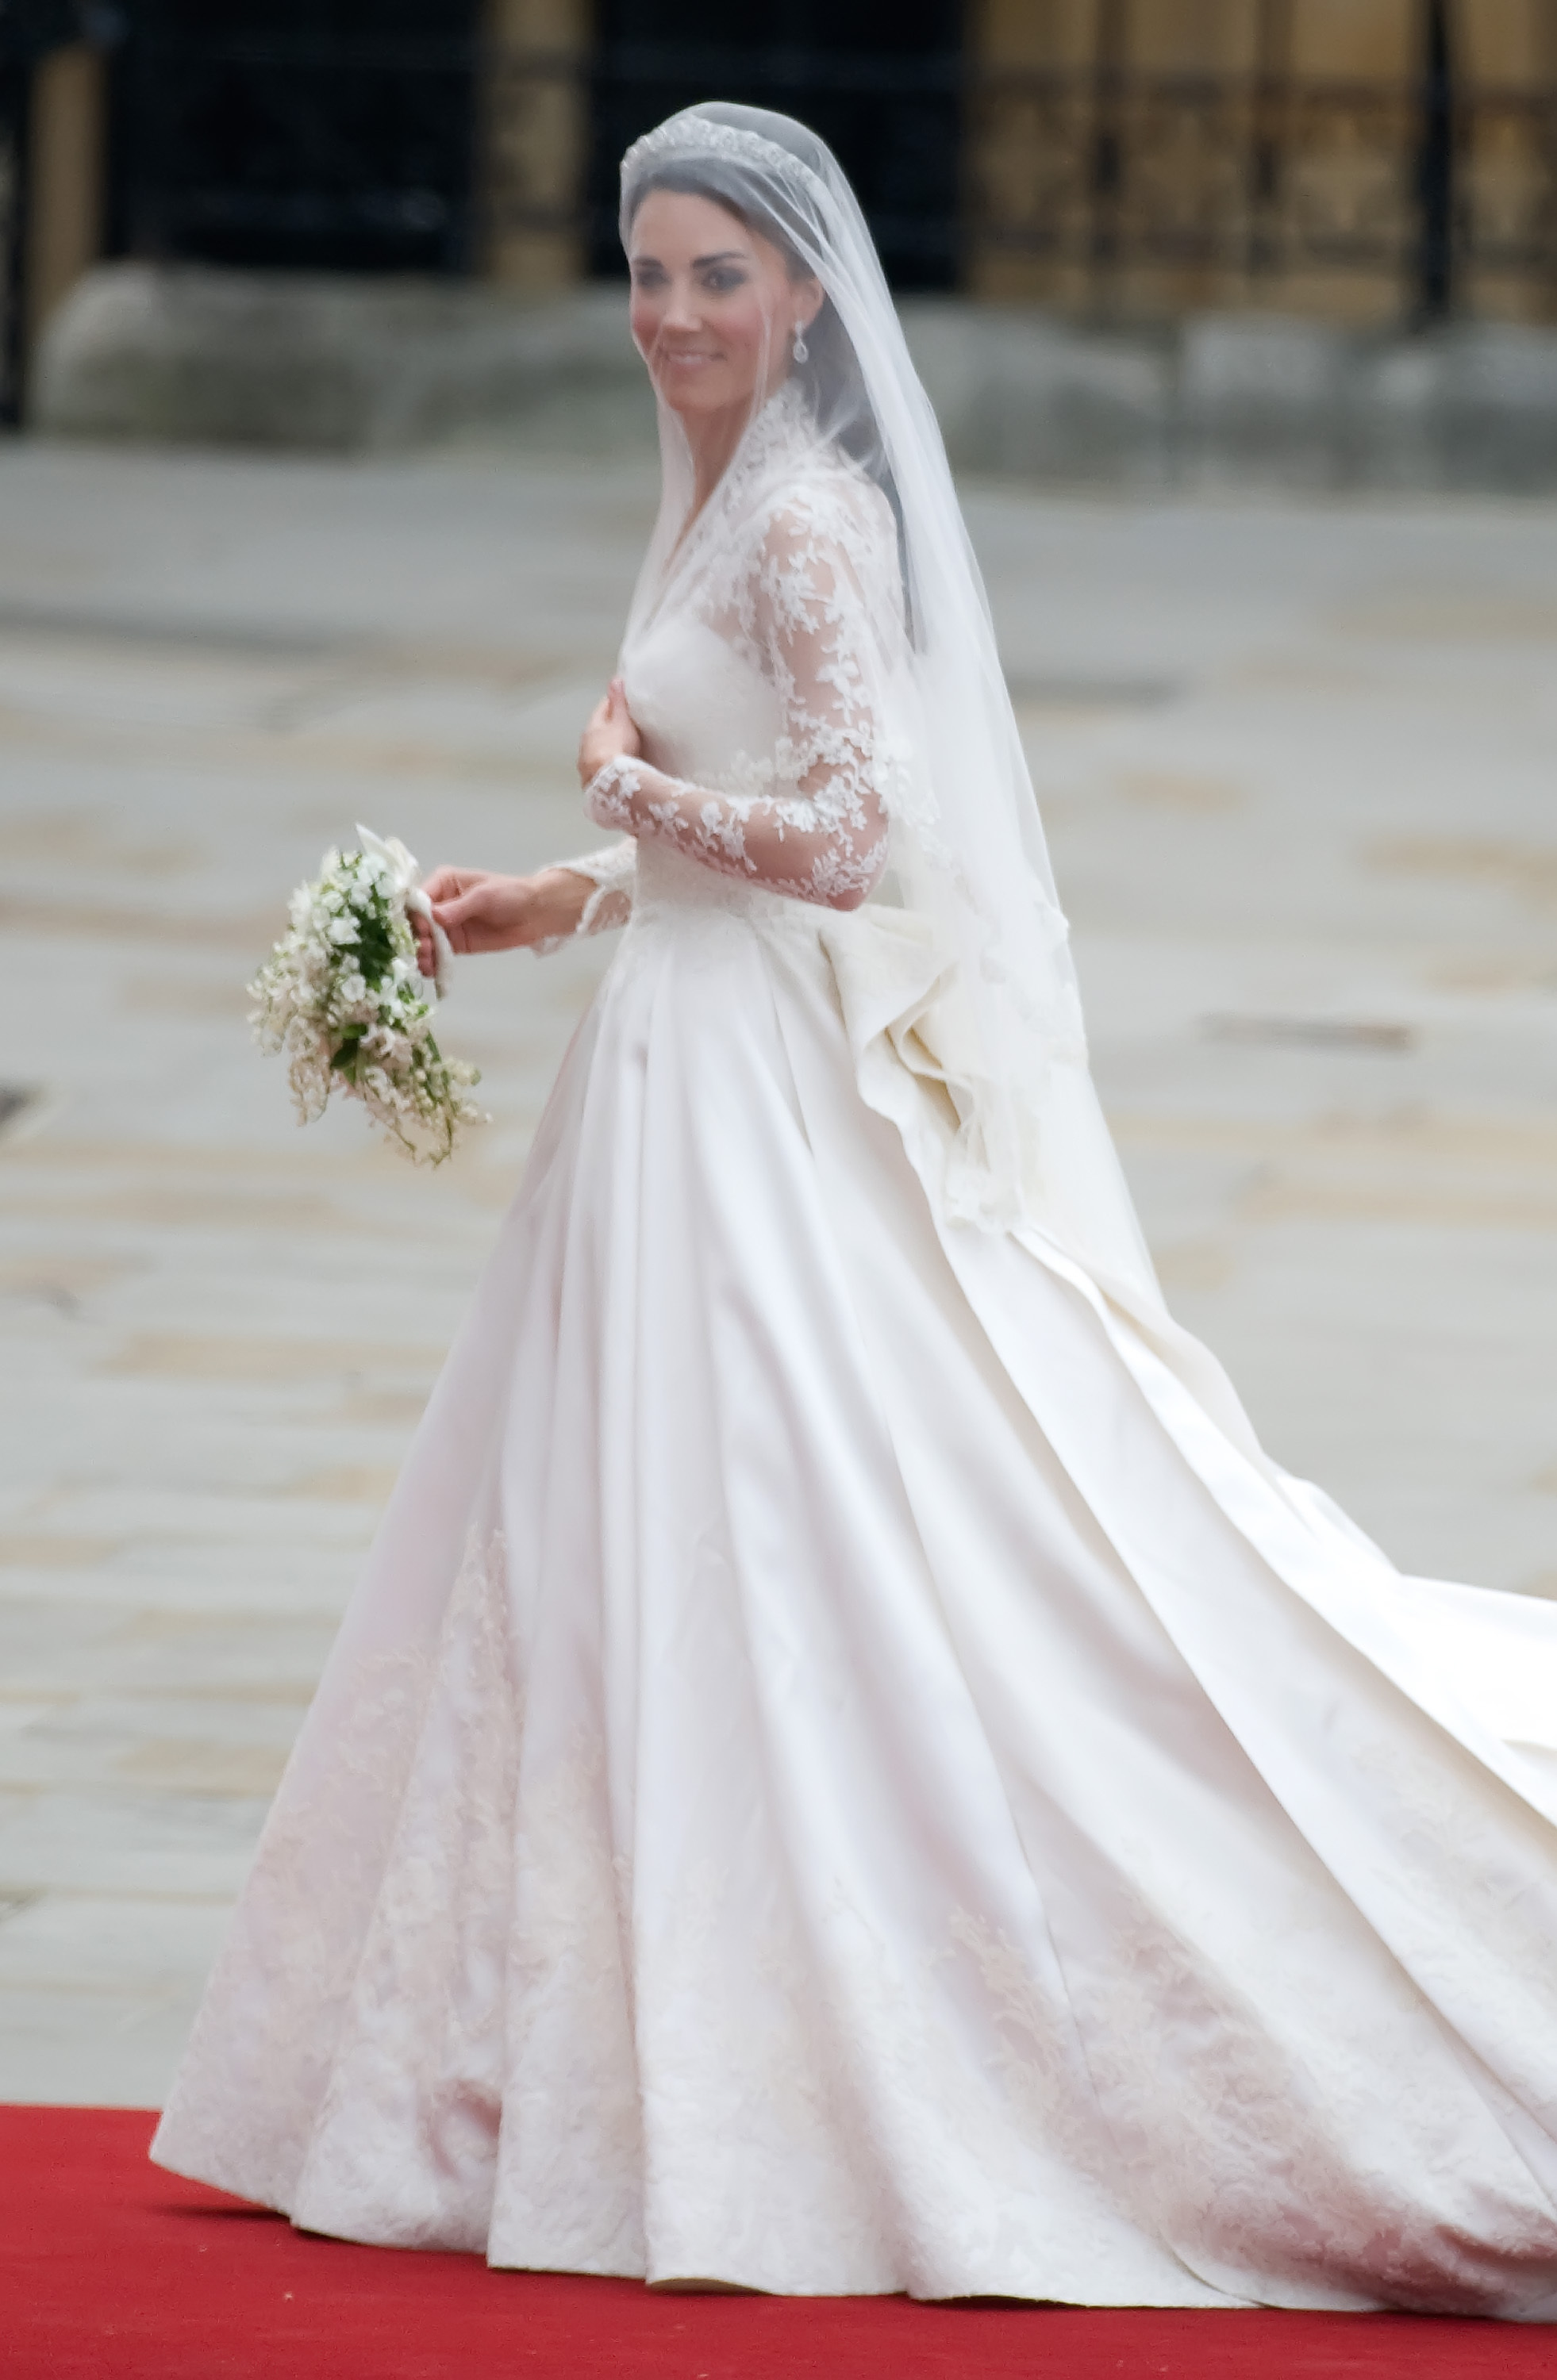 Catherine Middleton arrives at Westminster Abbey to marry Prince William on April 29, 2011. **Not Available for Publication in France. Available for Publication in the Rest of the World** Credit Mandatory: Zak Hussein/WENN.com